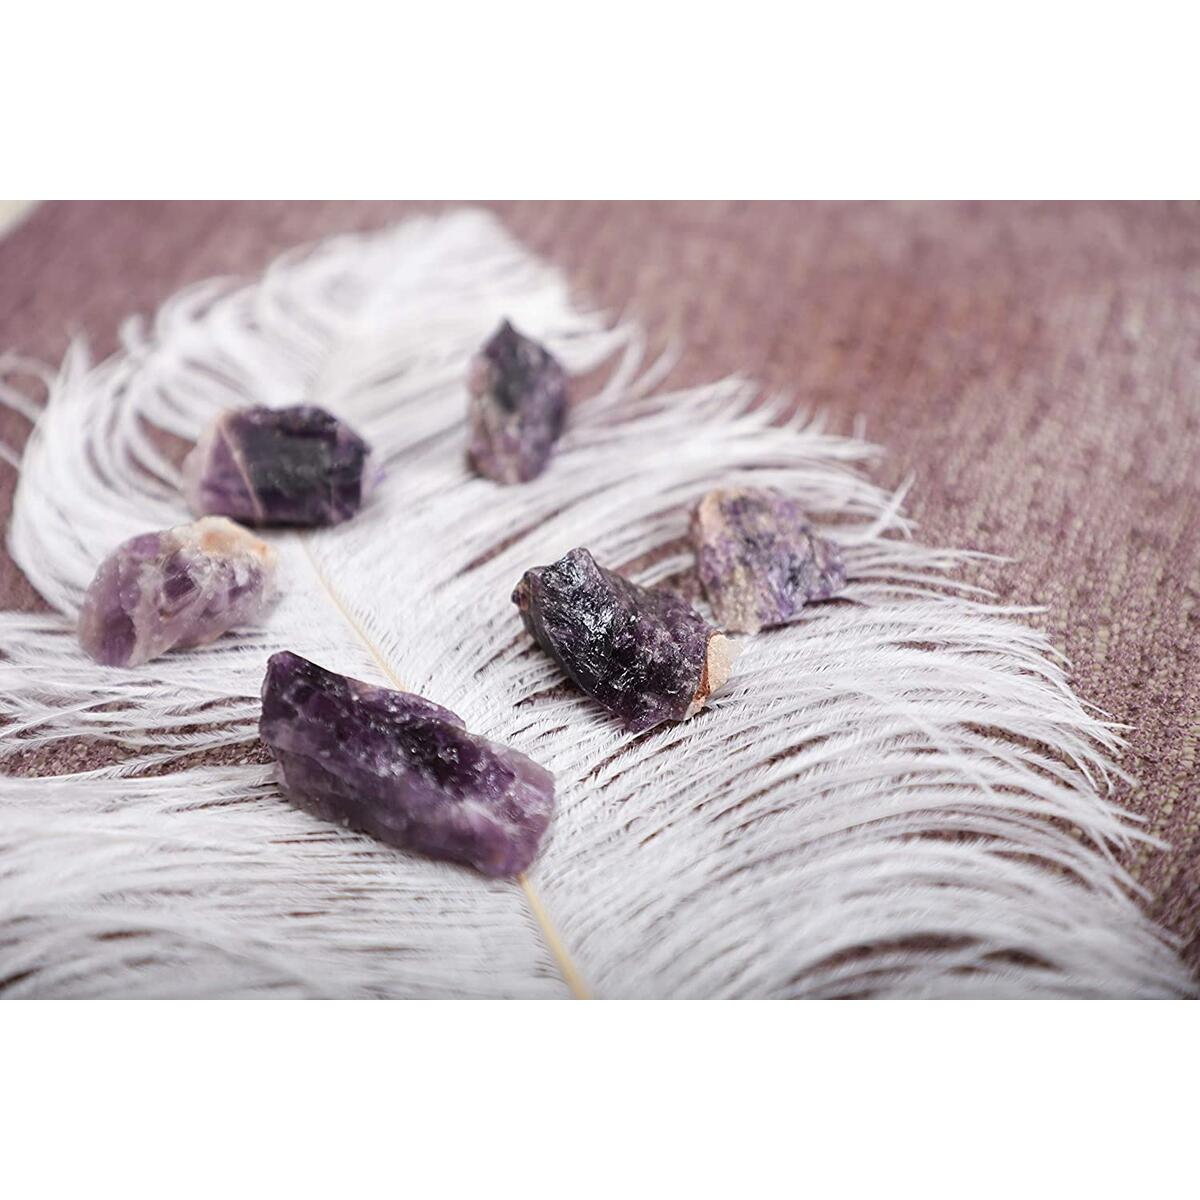 Chakra Aromatherapy Home Diffuser Crystals and Stones Kit (Amethyst)